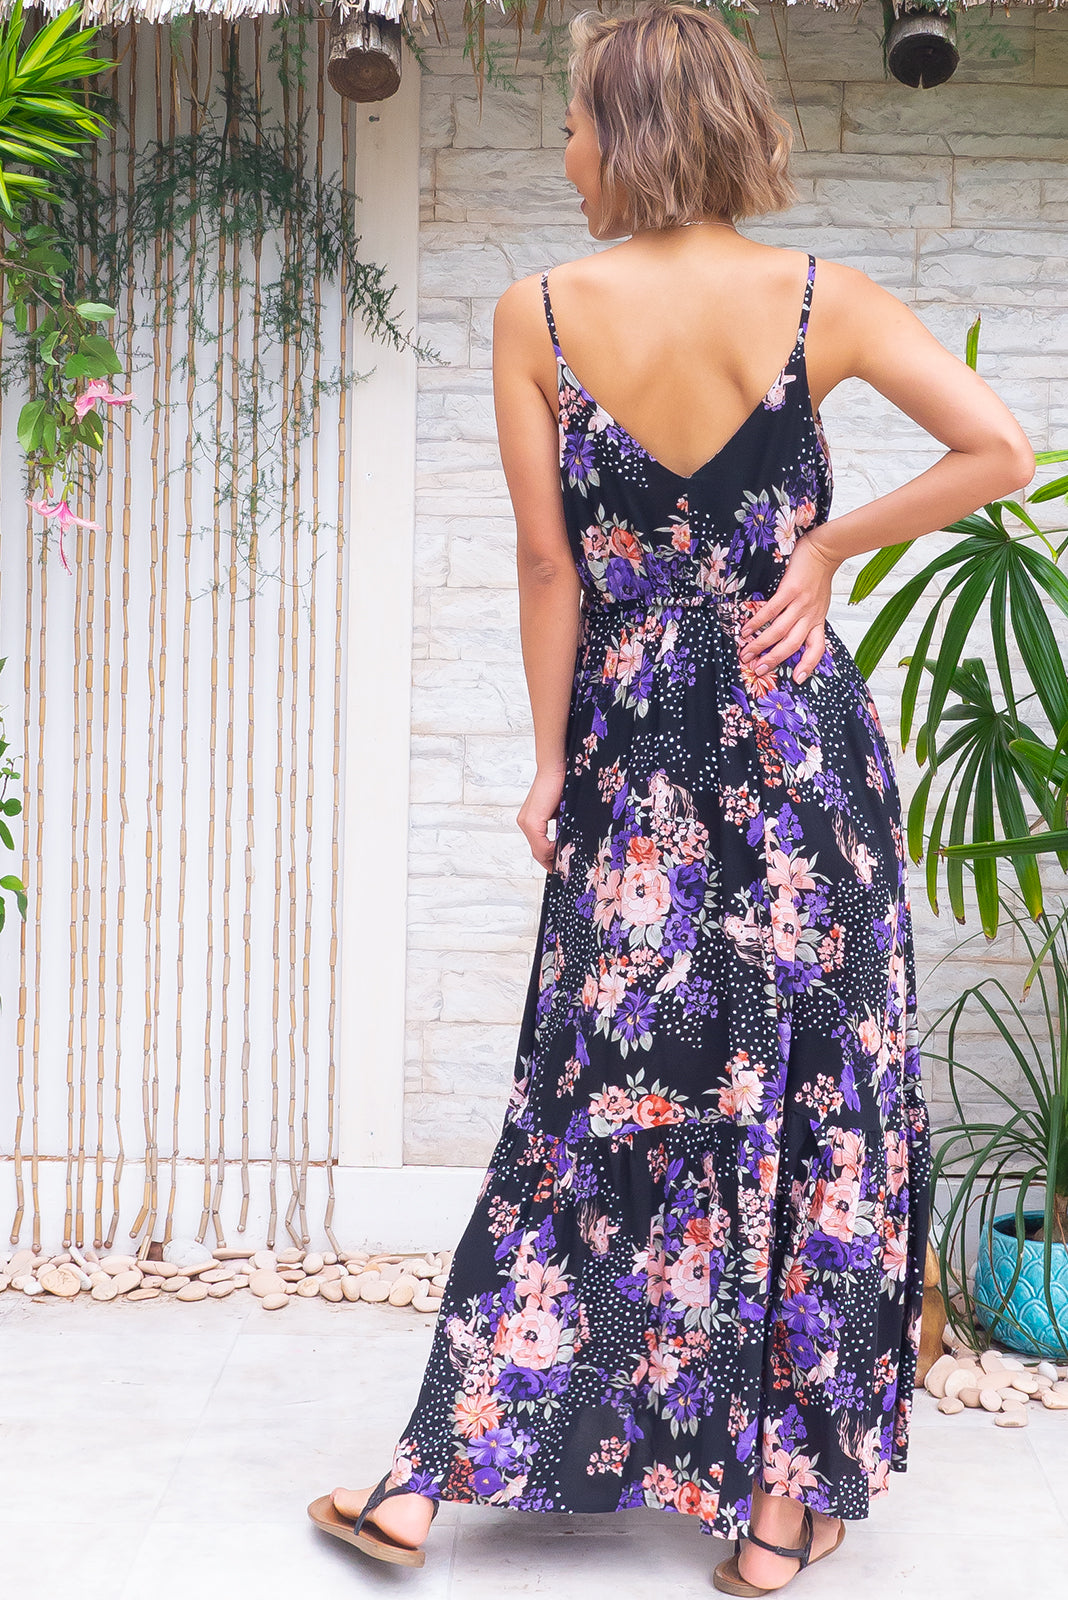 The Adoro Mermaid Noir Maxi Dress features fust area lined, V neck and back, elastic and drawstring under bust, thin straps, side pockets, frill at base of skirt and 100% rayon in black base with pink and purple floral print.